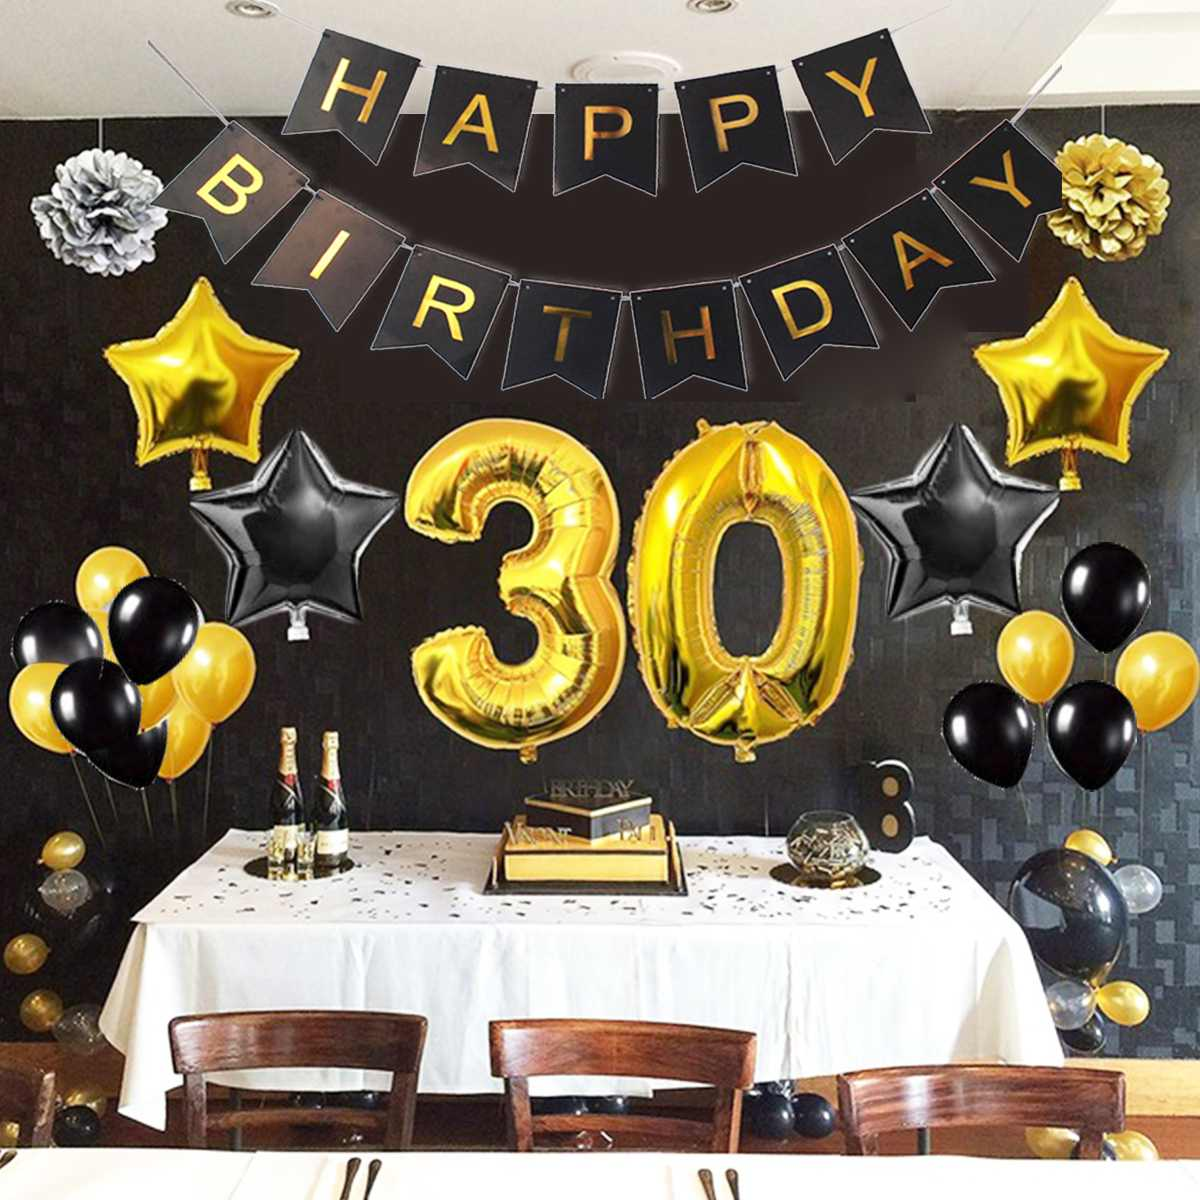 1/30/40/50/60/70/80 Foil Balloons Set Adult Kid Birthday Banner Inflatable & Reusable Party Decoration No need to Tie Knots1/30/40/50/60/70/80 Foil Balloons Set Adult Kid Birthday Banner Inflatable & Reusable Party Decoration No need to Tie Knots